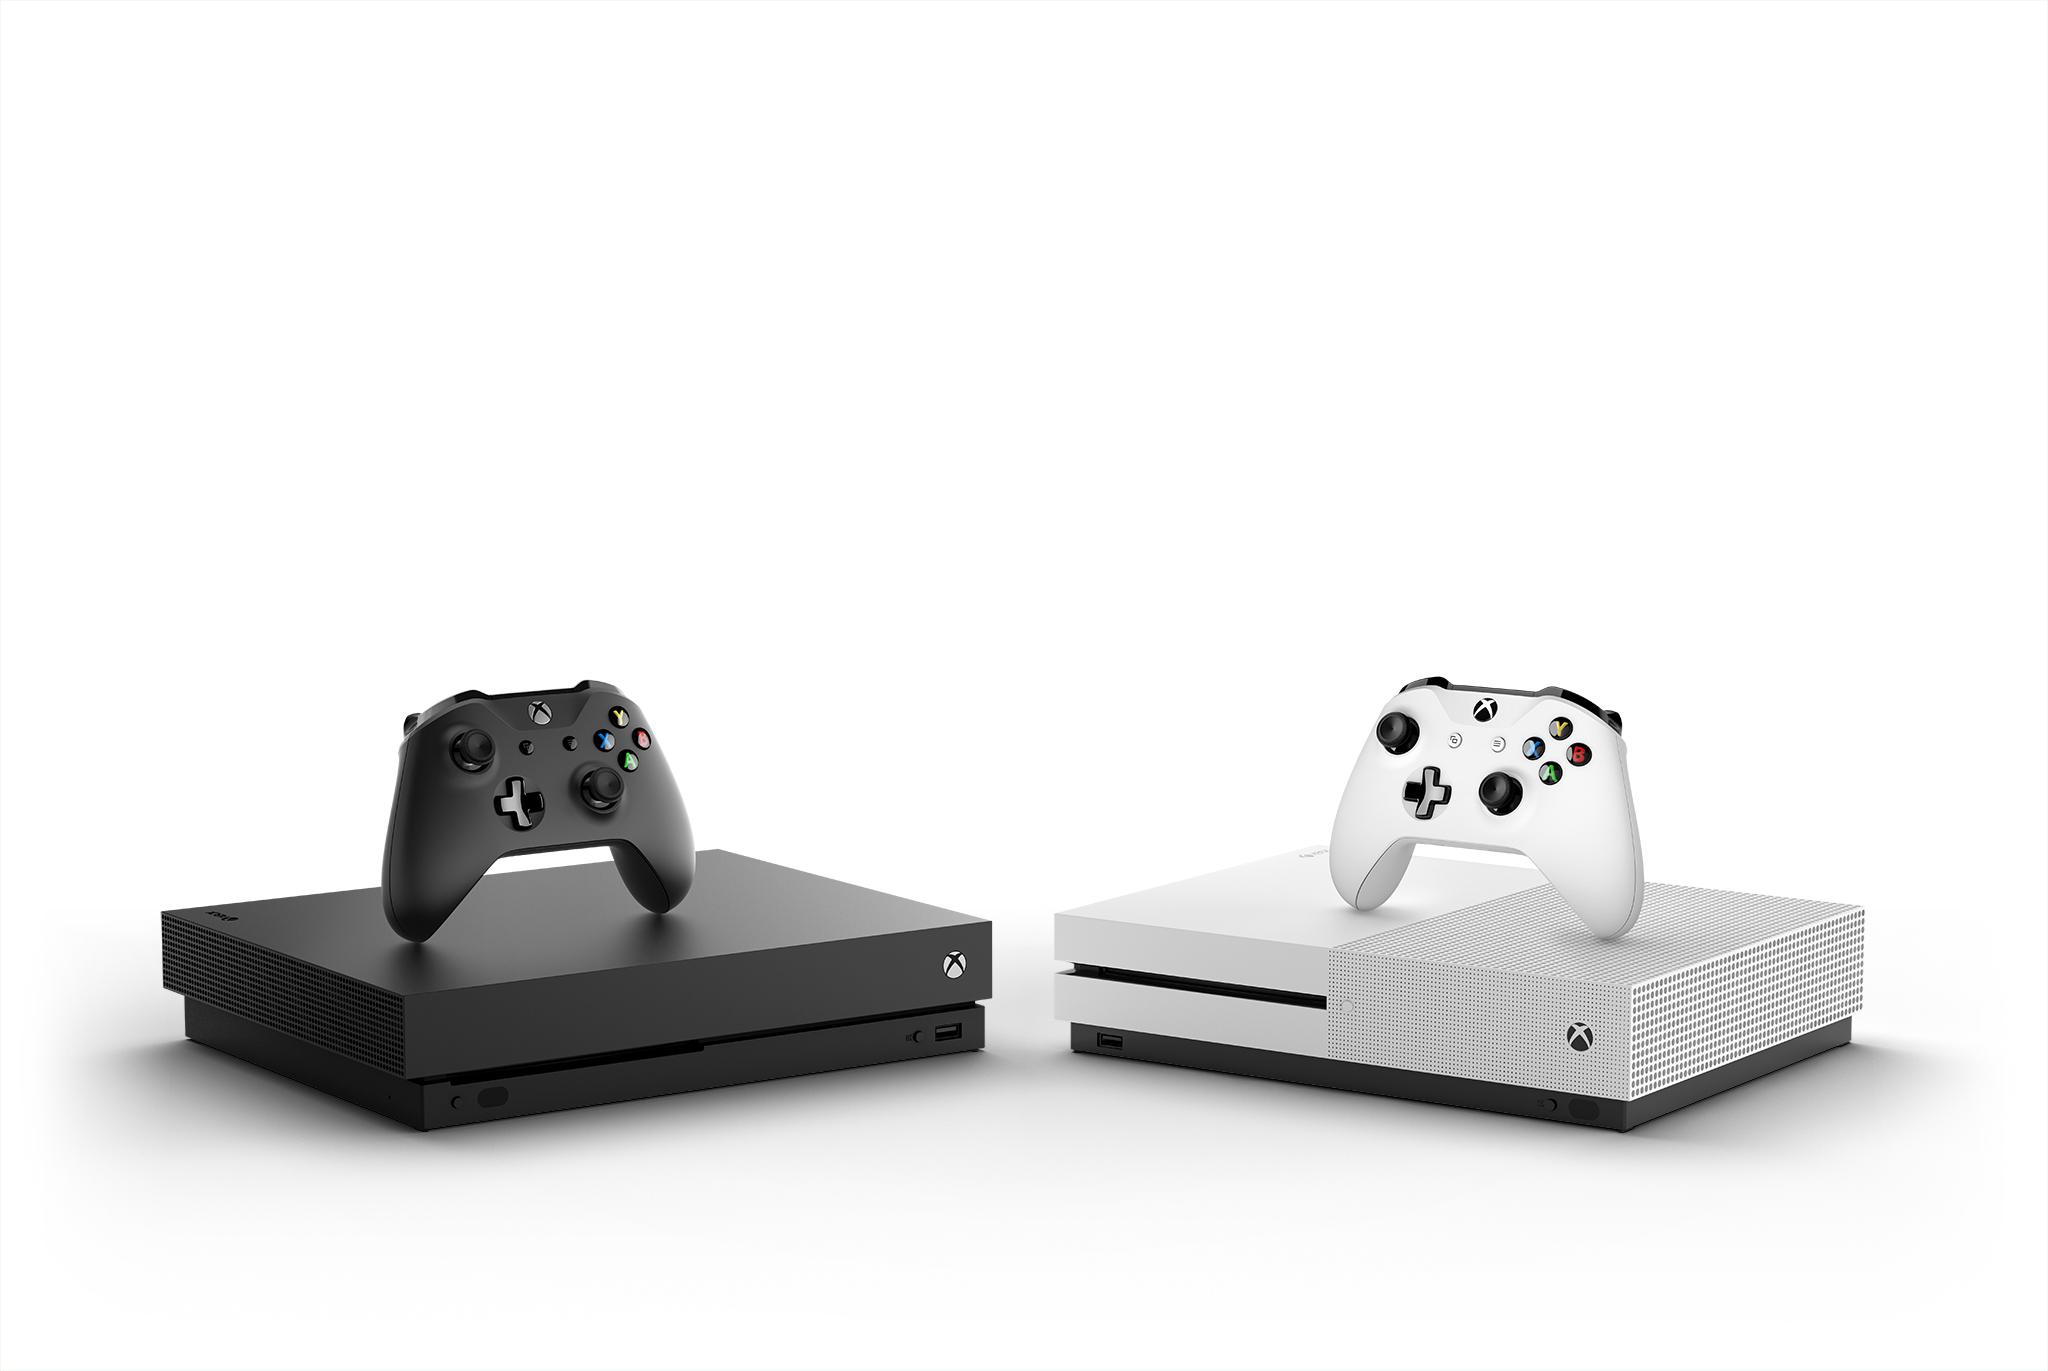 Xbox One X Console Controller Hrz Family Mirror White and Black